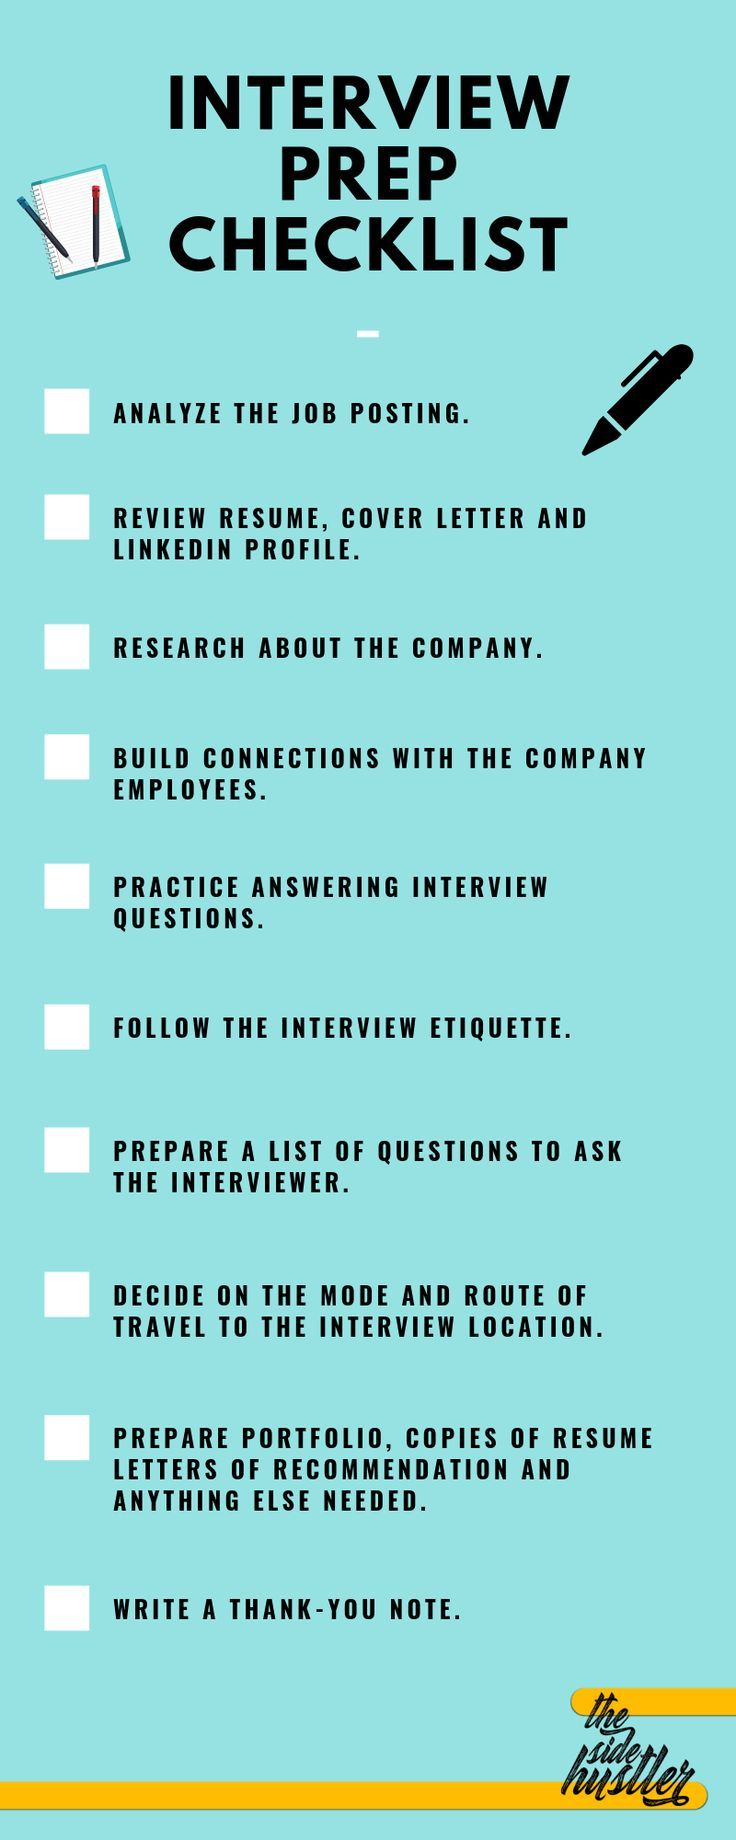 The complete checklist you need when preparing for your